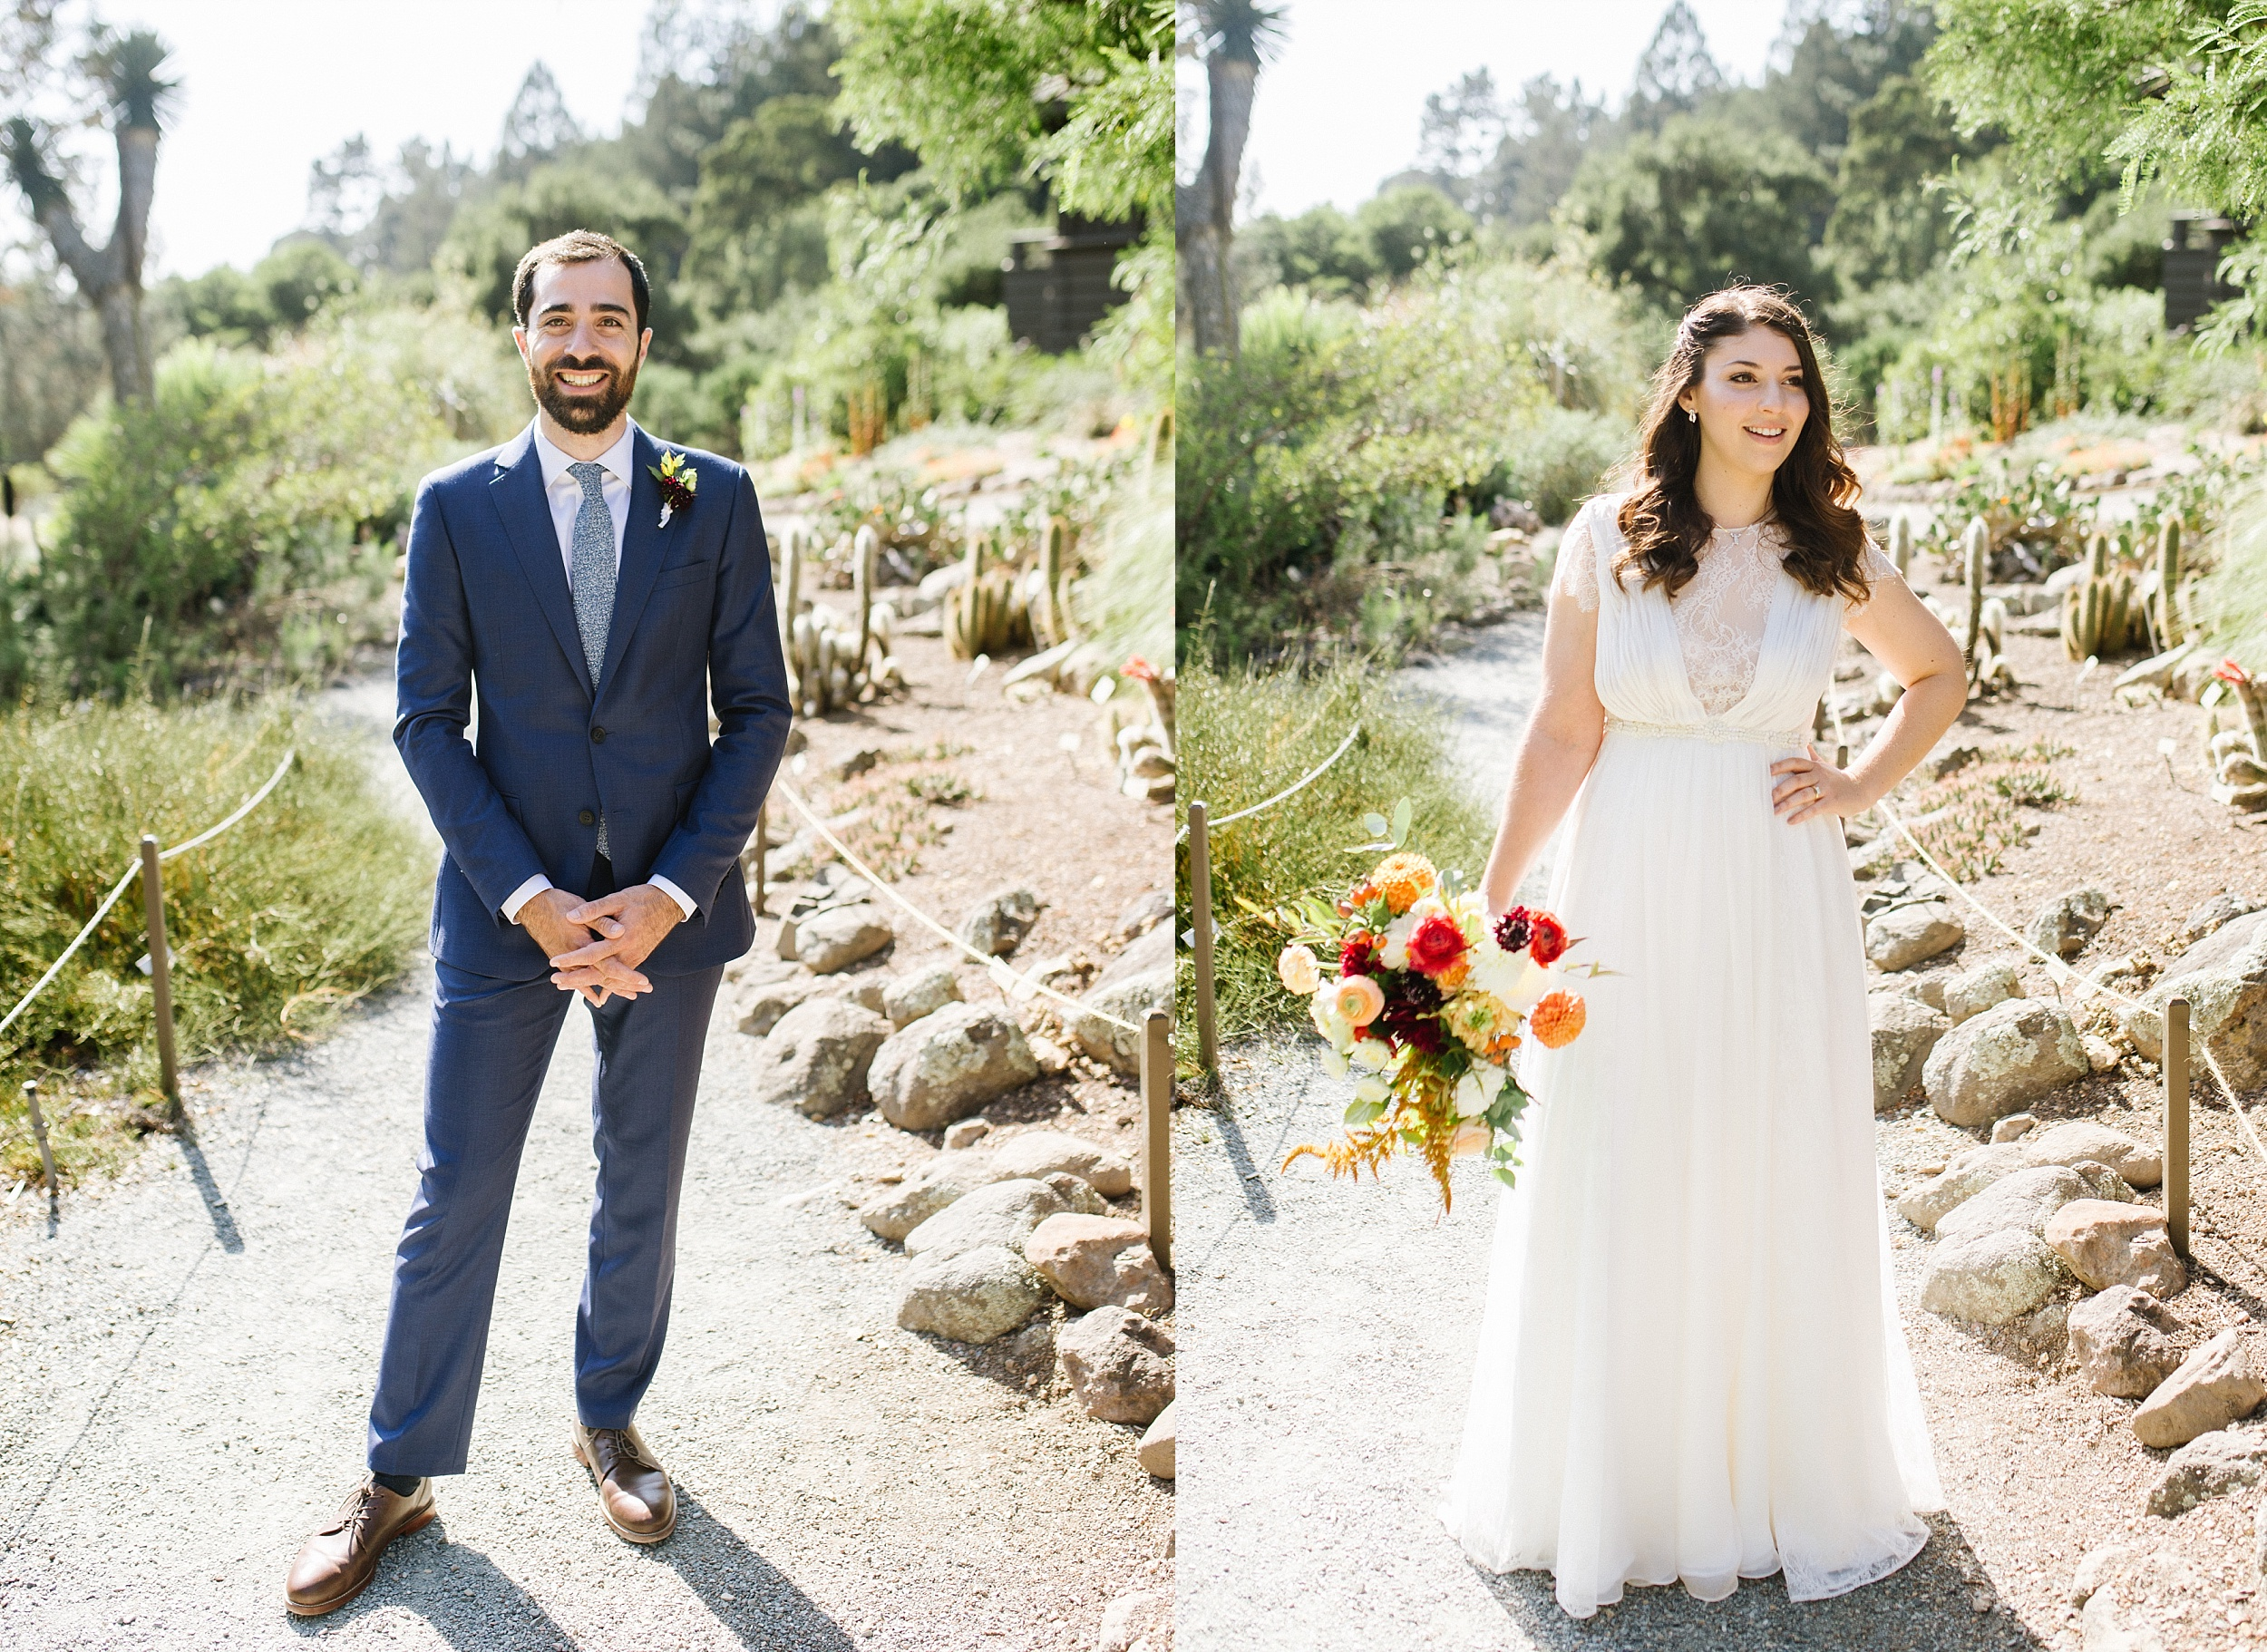 noahhannah_redwoods_botanical_wedding_berkeley_cdp_0009.jpg